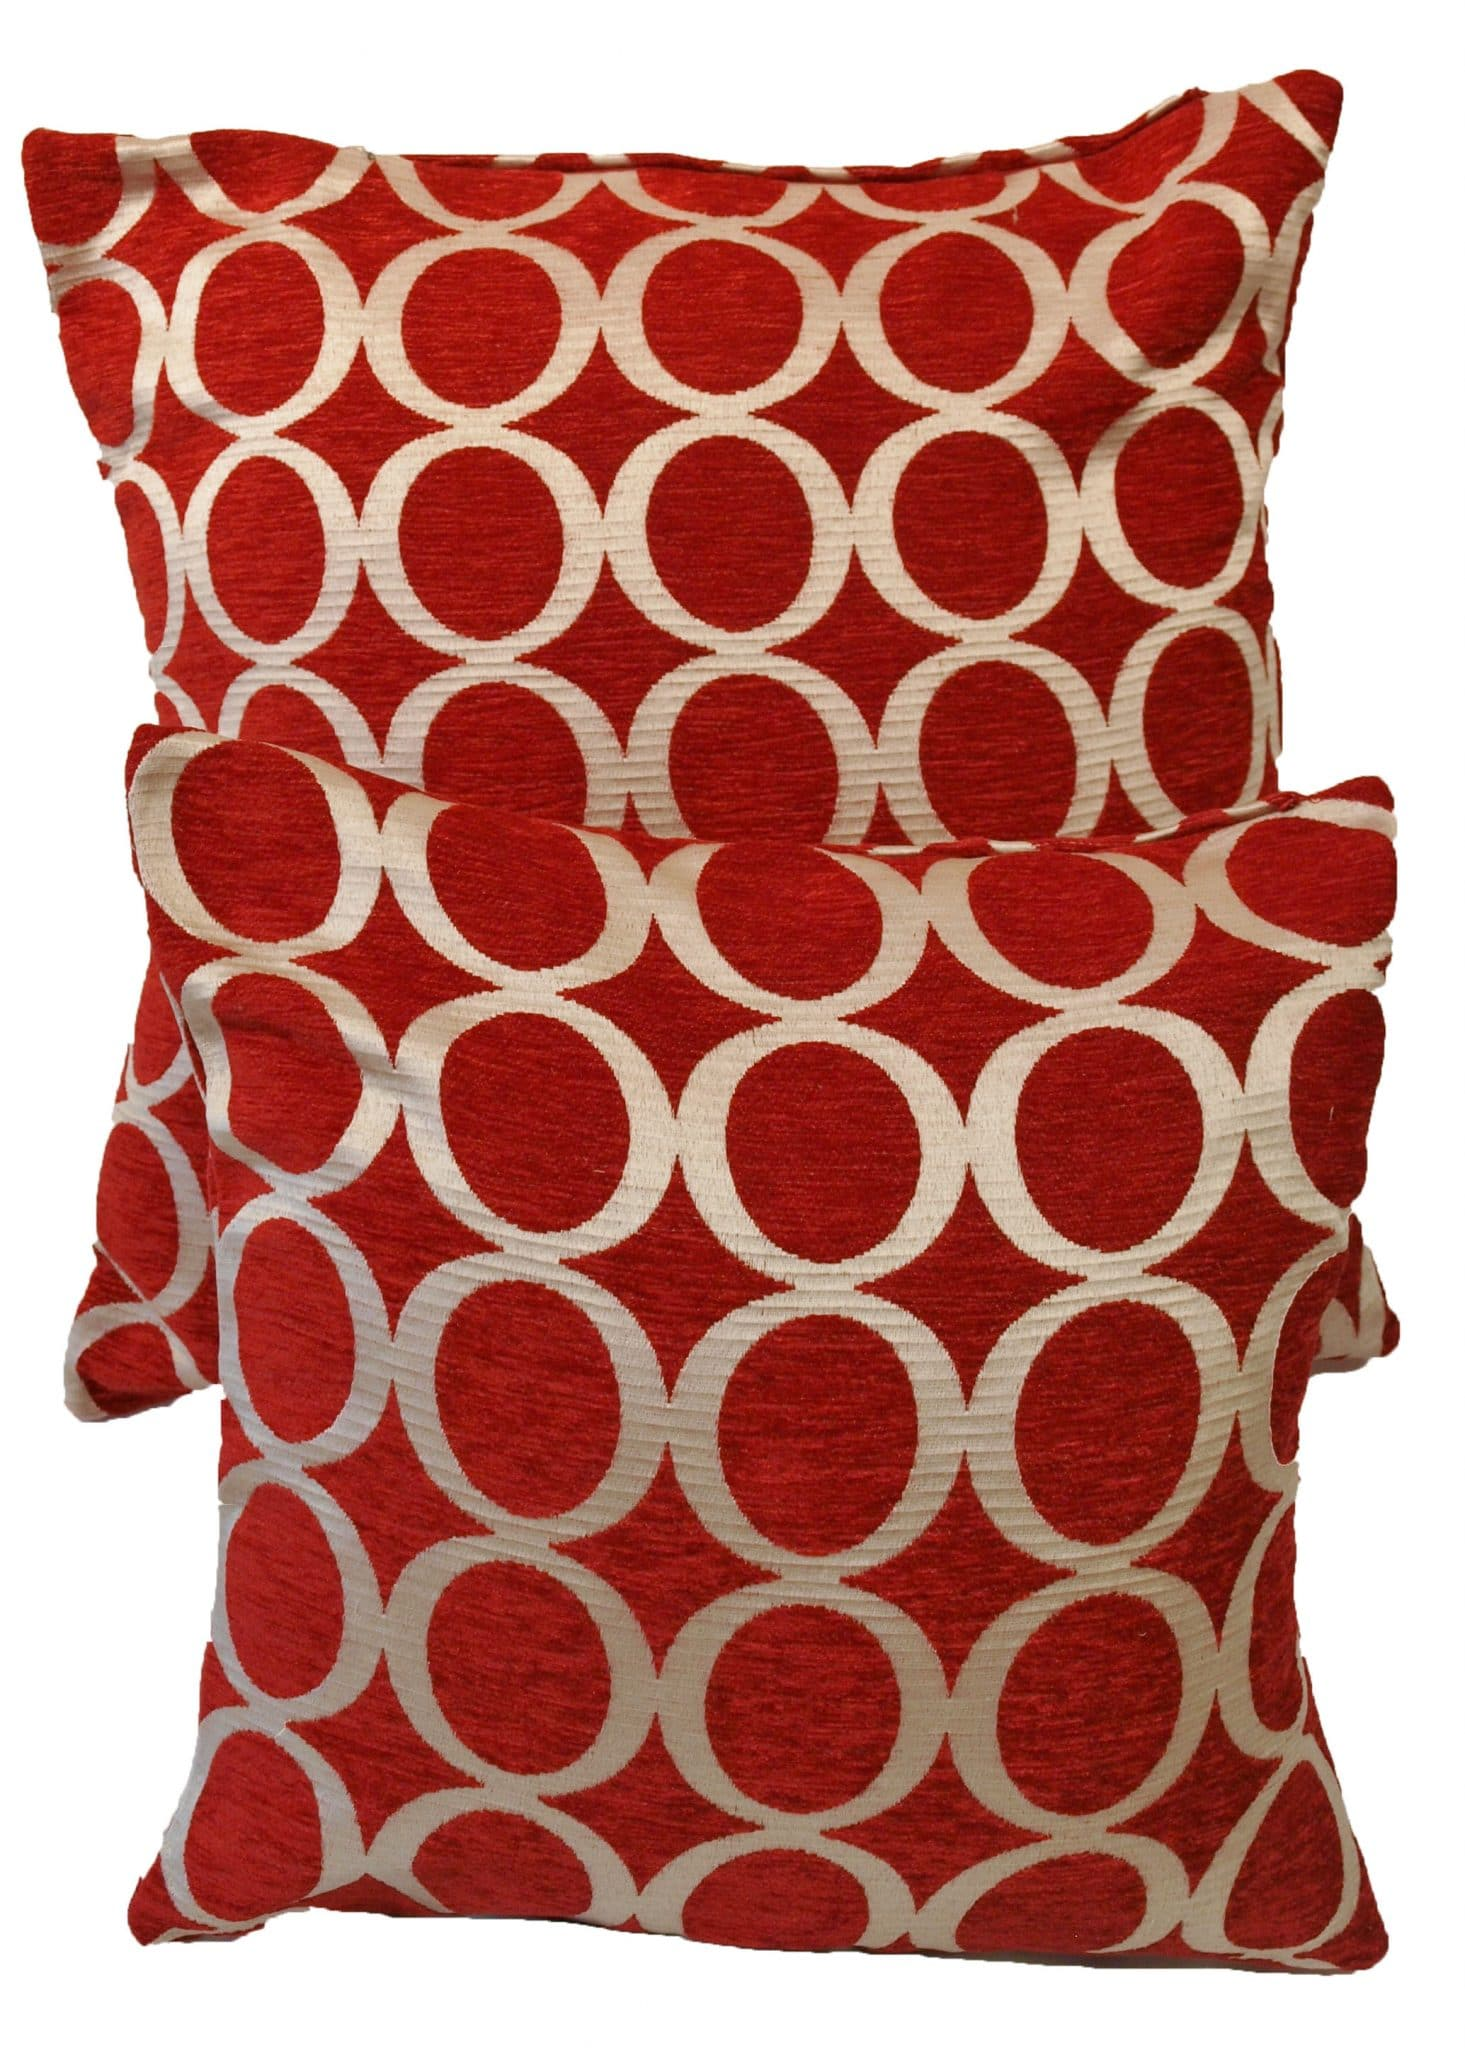 Oh Red Cushion Covers Dublin Ireland